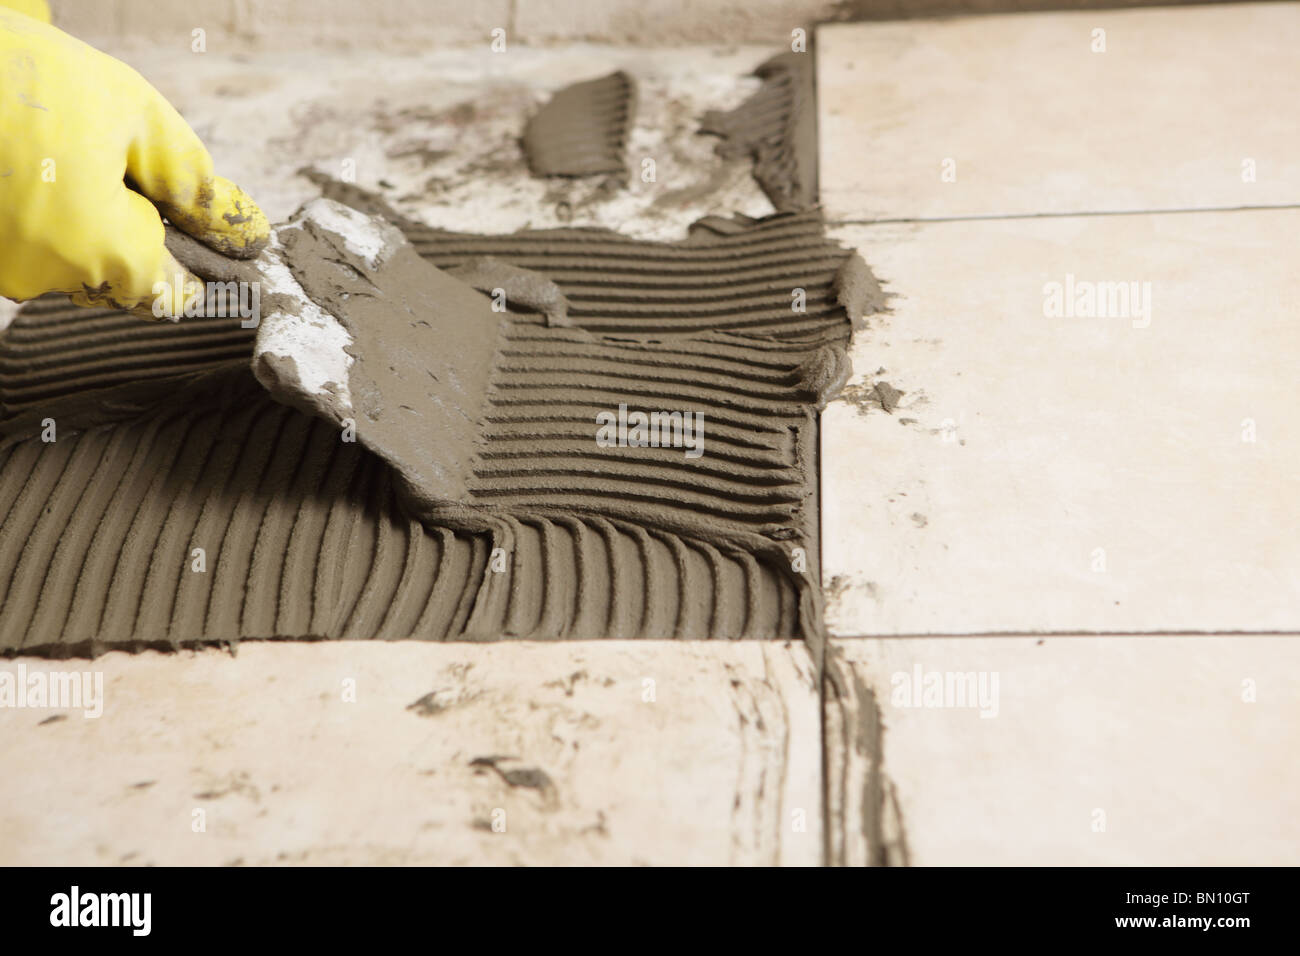 Tiler installing ceramic tiles on a floor using notched trowel tiler installing ceramic tiles on a floor using notched trowel dailygadgetfo Image collections